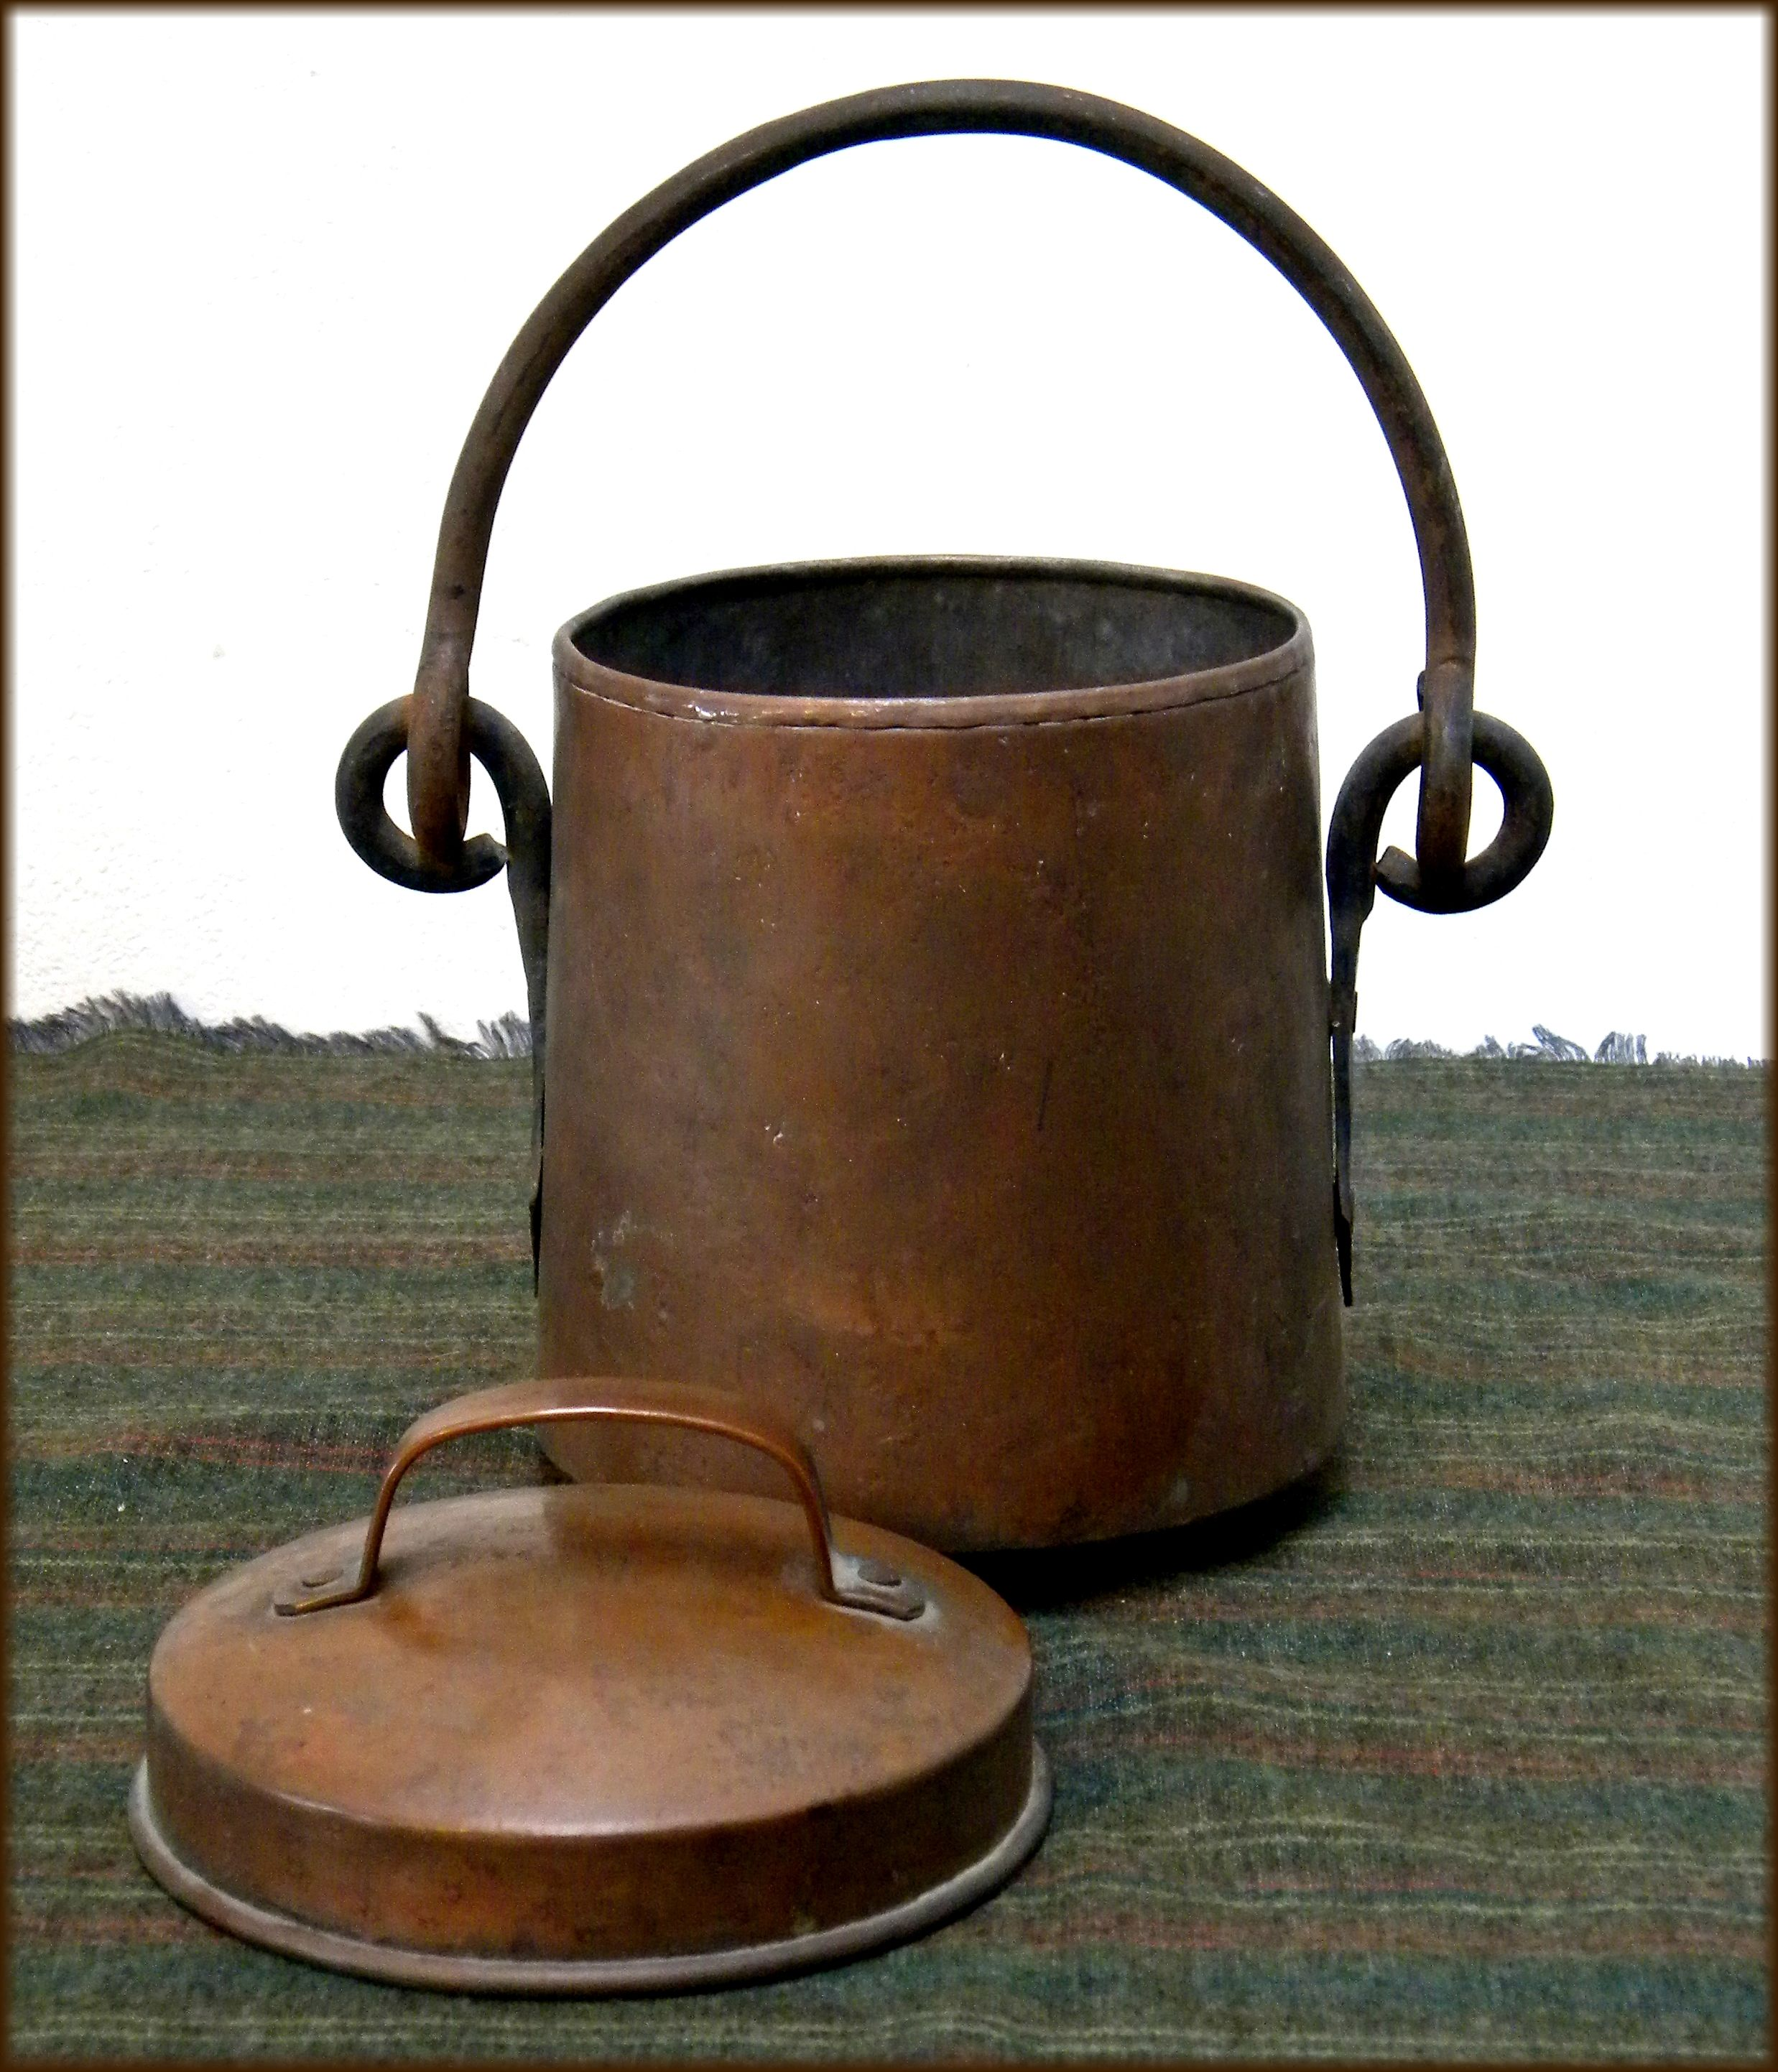 dating copper pots By the 1950s, chocolate pot production died down very few, if any, are still made today, but one can still find virtually any style of chocolate pot online or in auction houses.